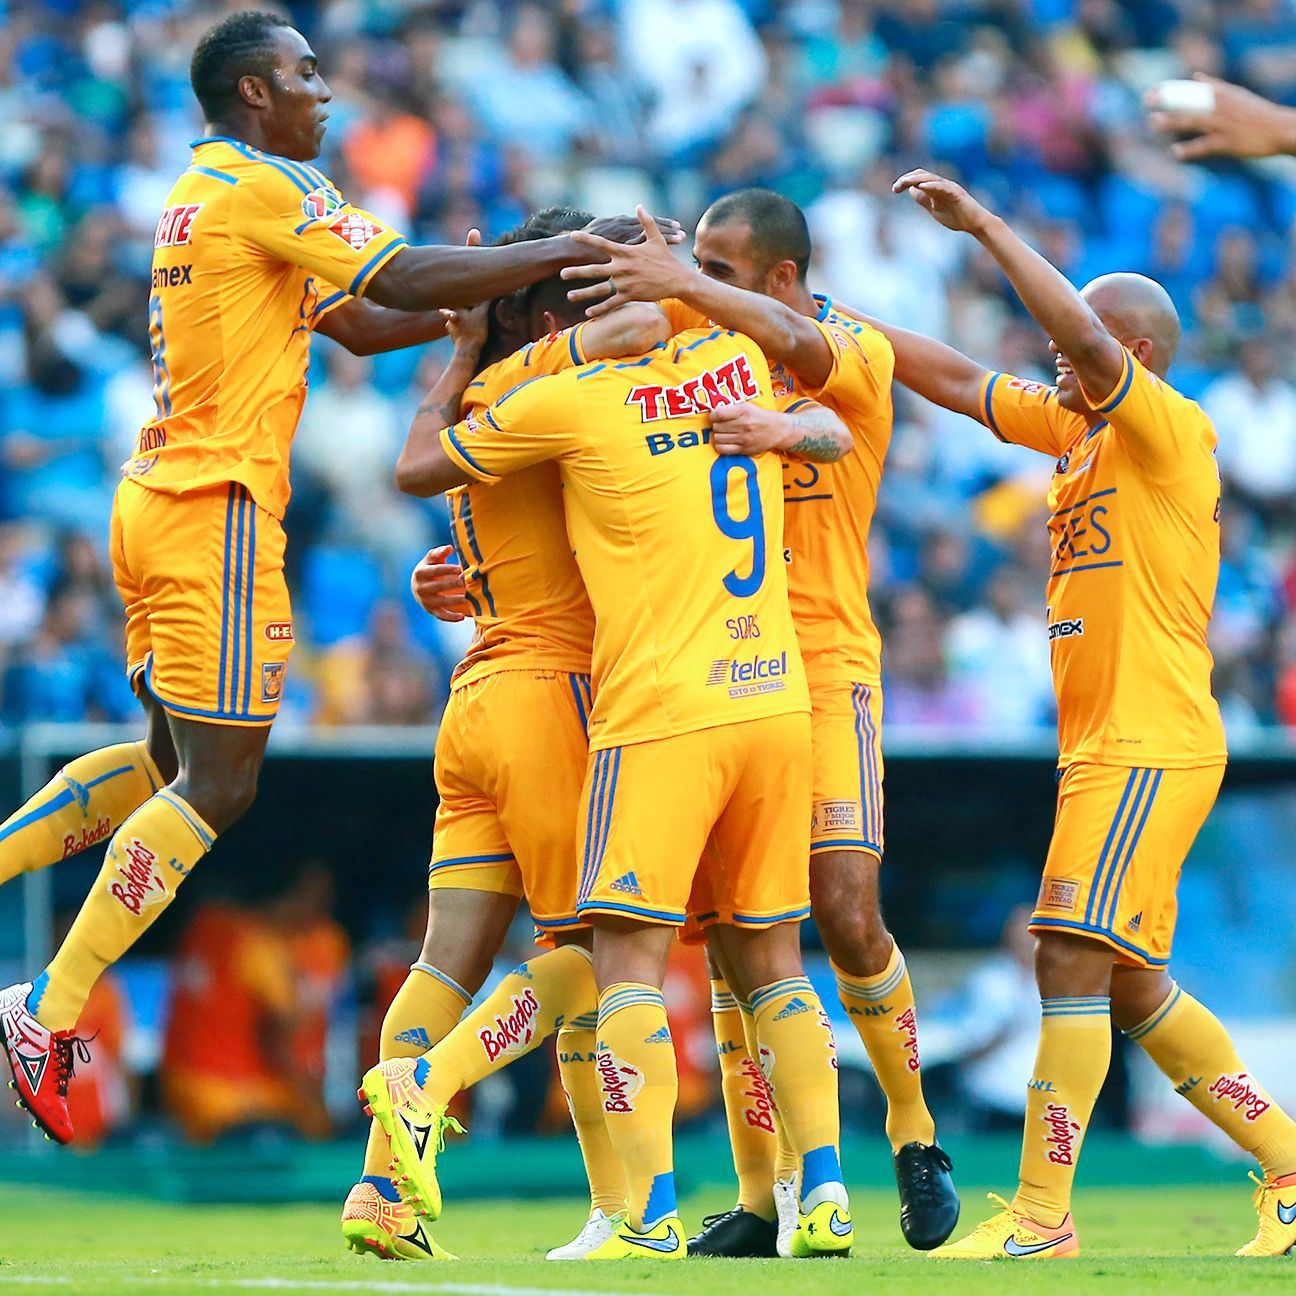 Tigres are starting to play their best <i>futbol</i> of the season right as the Liga MX Liguilla is set to start in a few weeks.